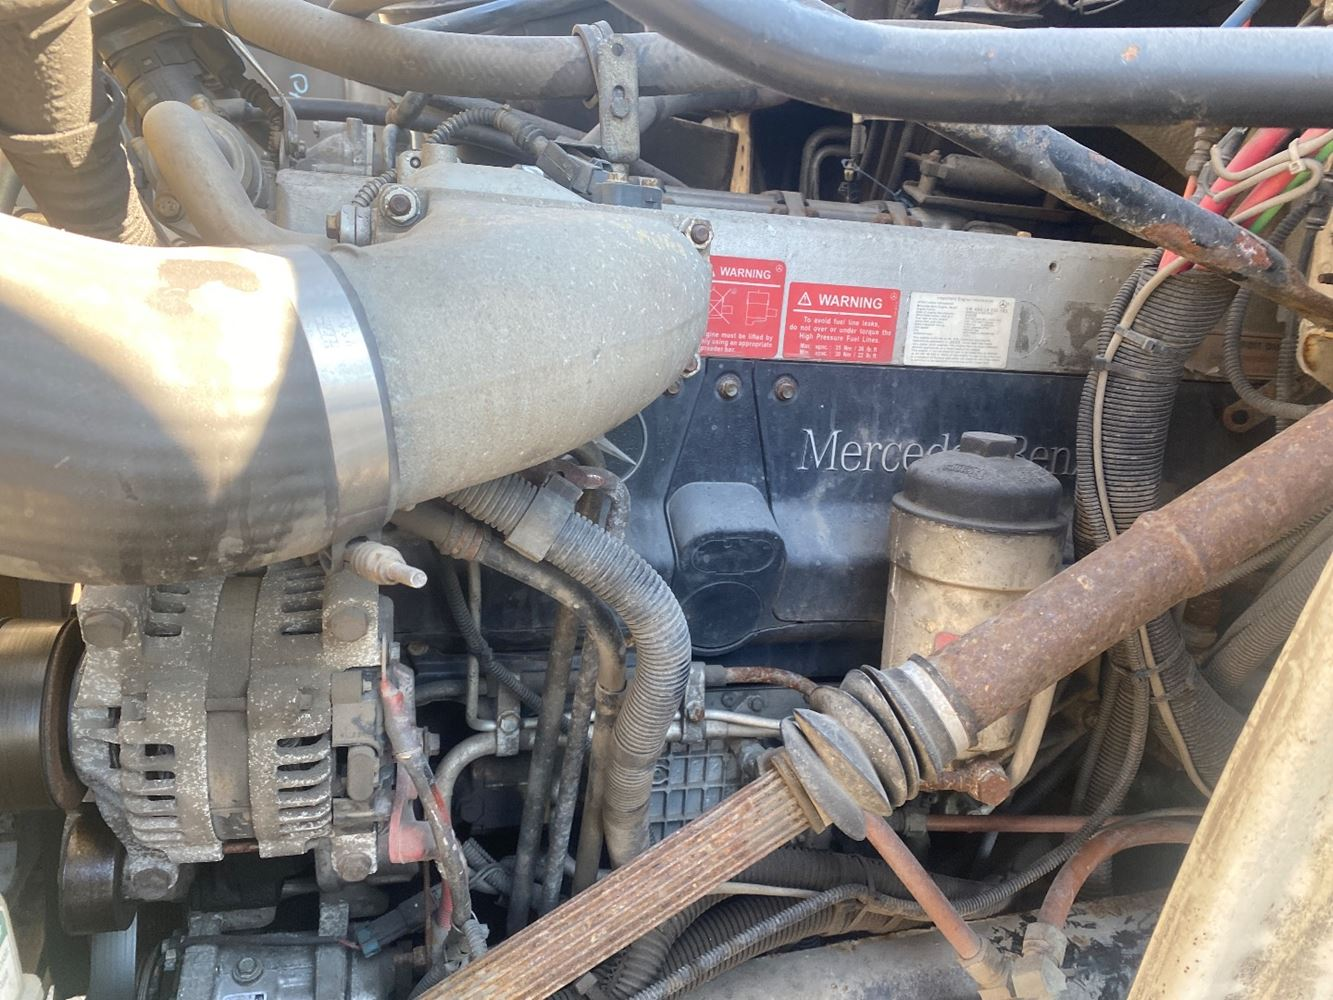 2007 MERCEDES MBE 4000 ENGINE ASSEMBLY TRUCK PARTS #707174